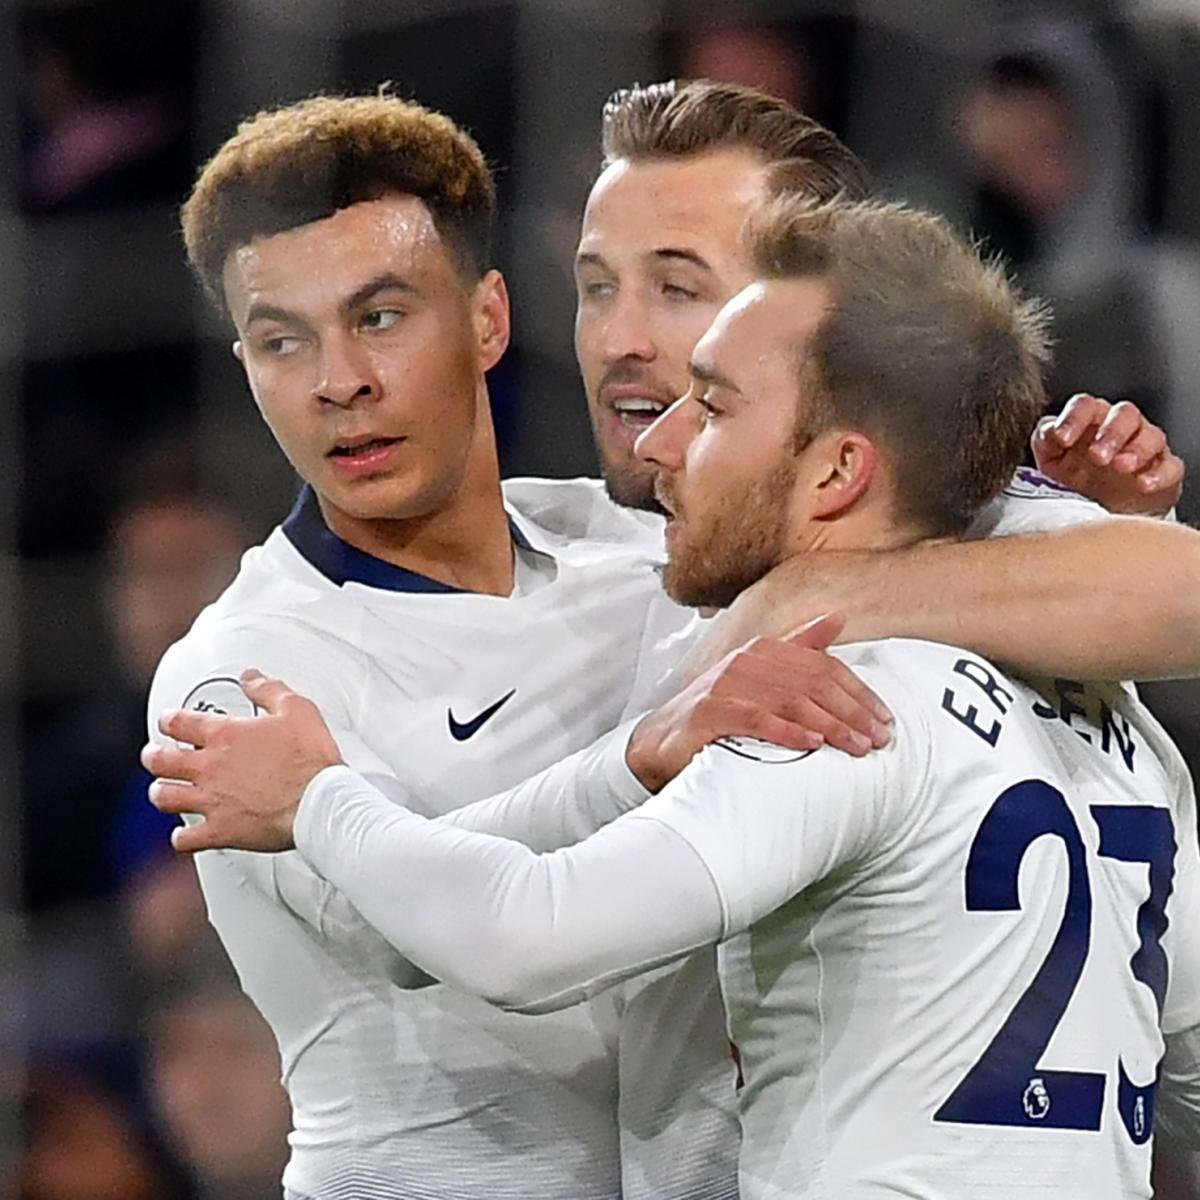 Tottenham 3 Fulham 1 Match Highlights Harry Kane Scores: EPL Results Week 21: Tuesday's 2019 Premier League Scores